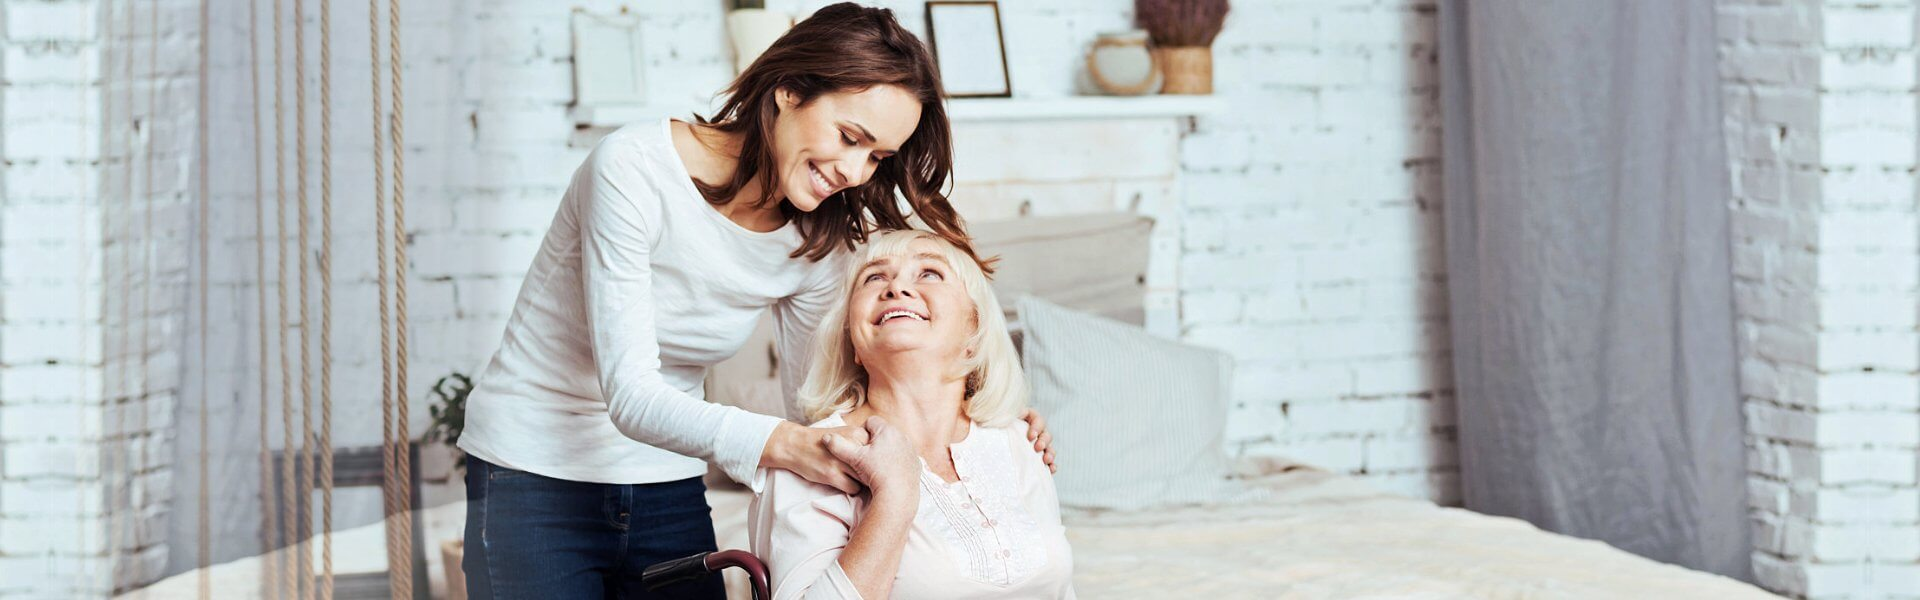 caregiver and elder woman smiling at each other